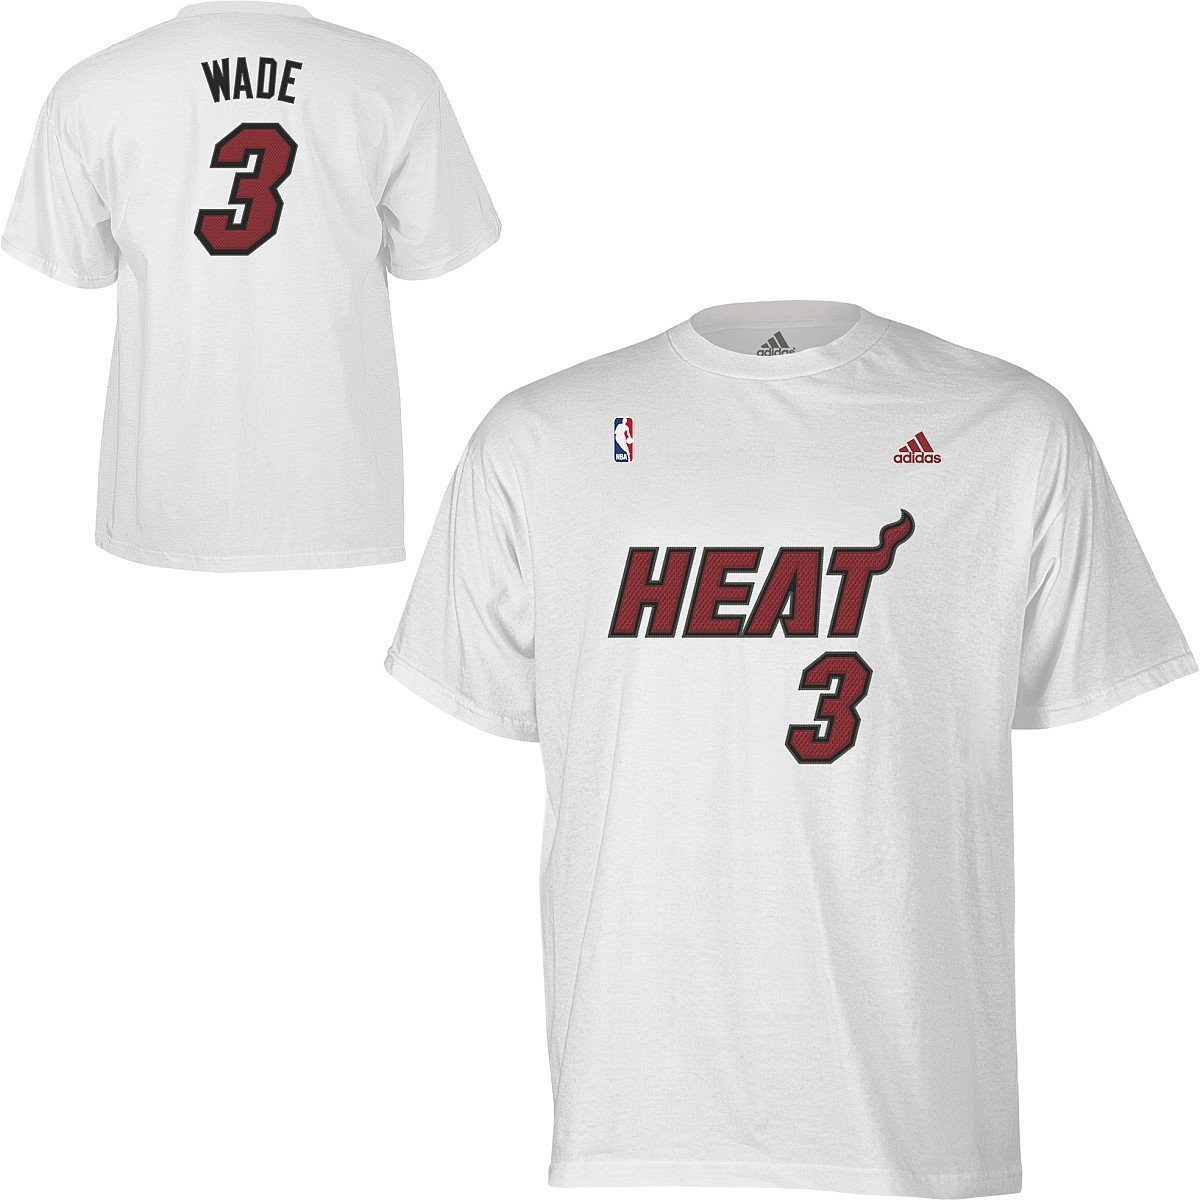 Amazon.com : Dwayne Wade Miami Heat White Jersey Name and Number T-shirt  X-Large : Sports Fan Apparel : Sports & Outdoors